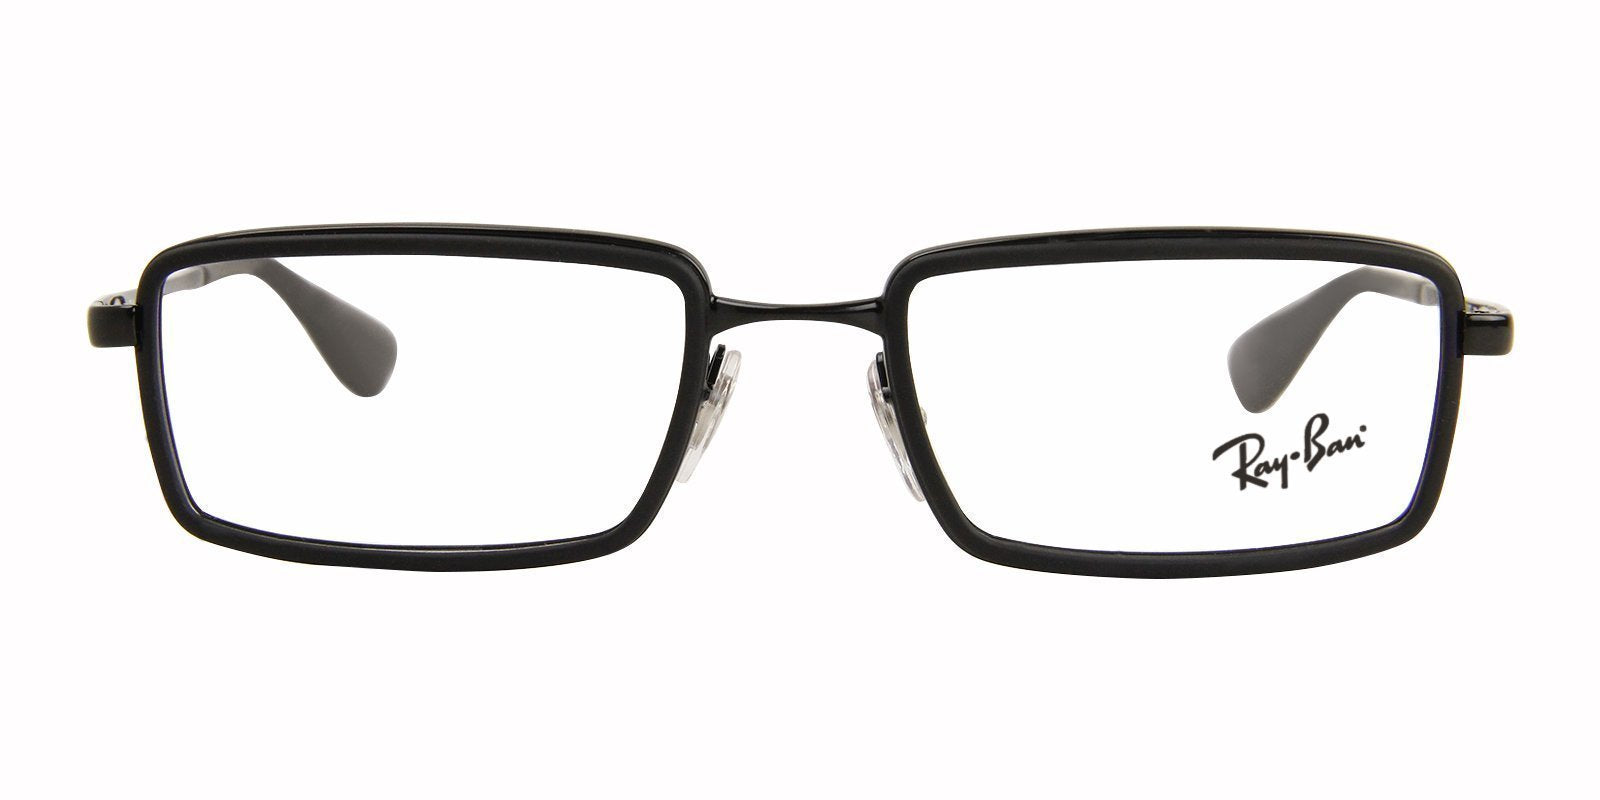 Ray Ban Rx - RX6337 Black Rectangular Unisex Eyeglasses - 51mm-Eyeglasses-Designer Eyes